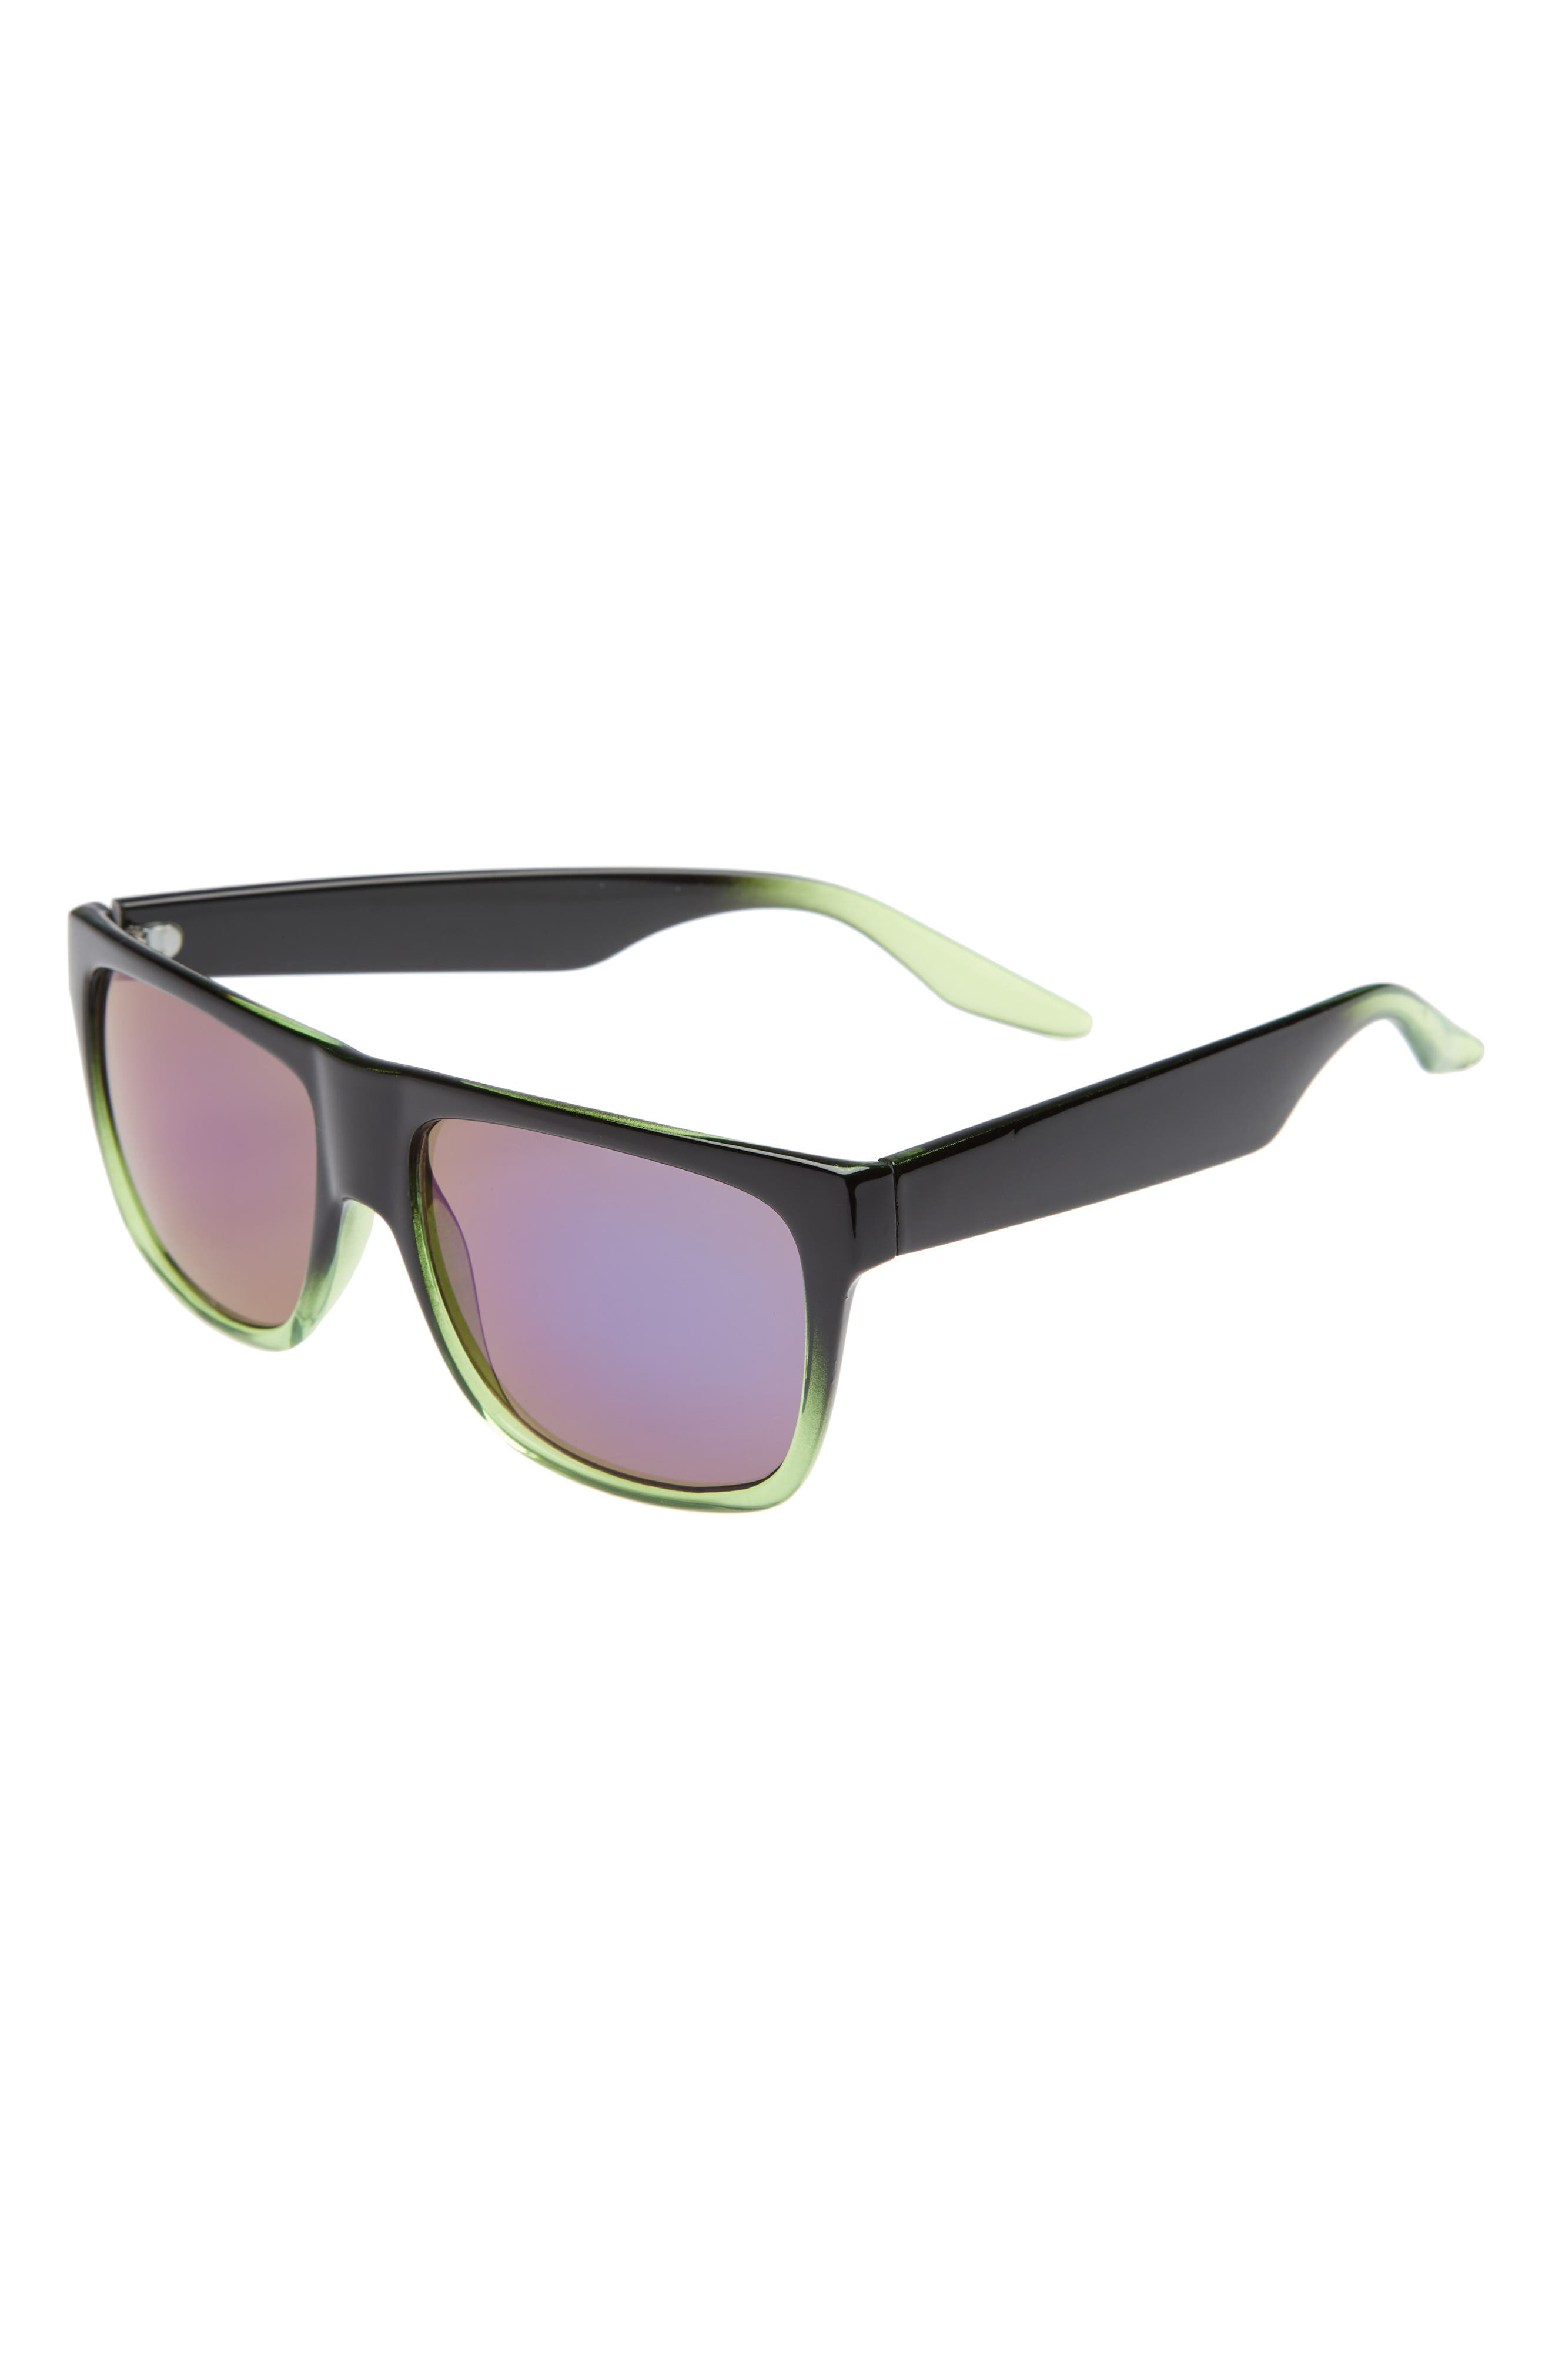 Ombré Frame Sunglasses,                             Main thumbnail 1, color,